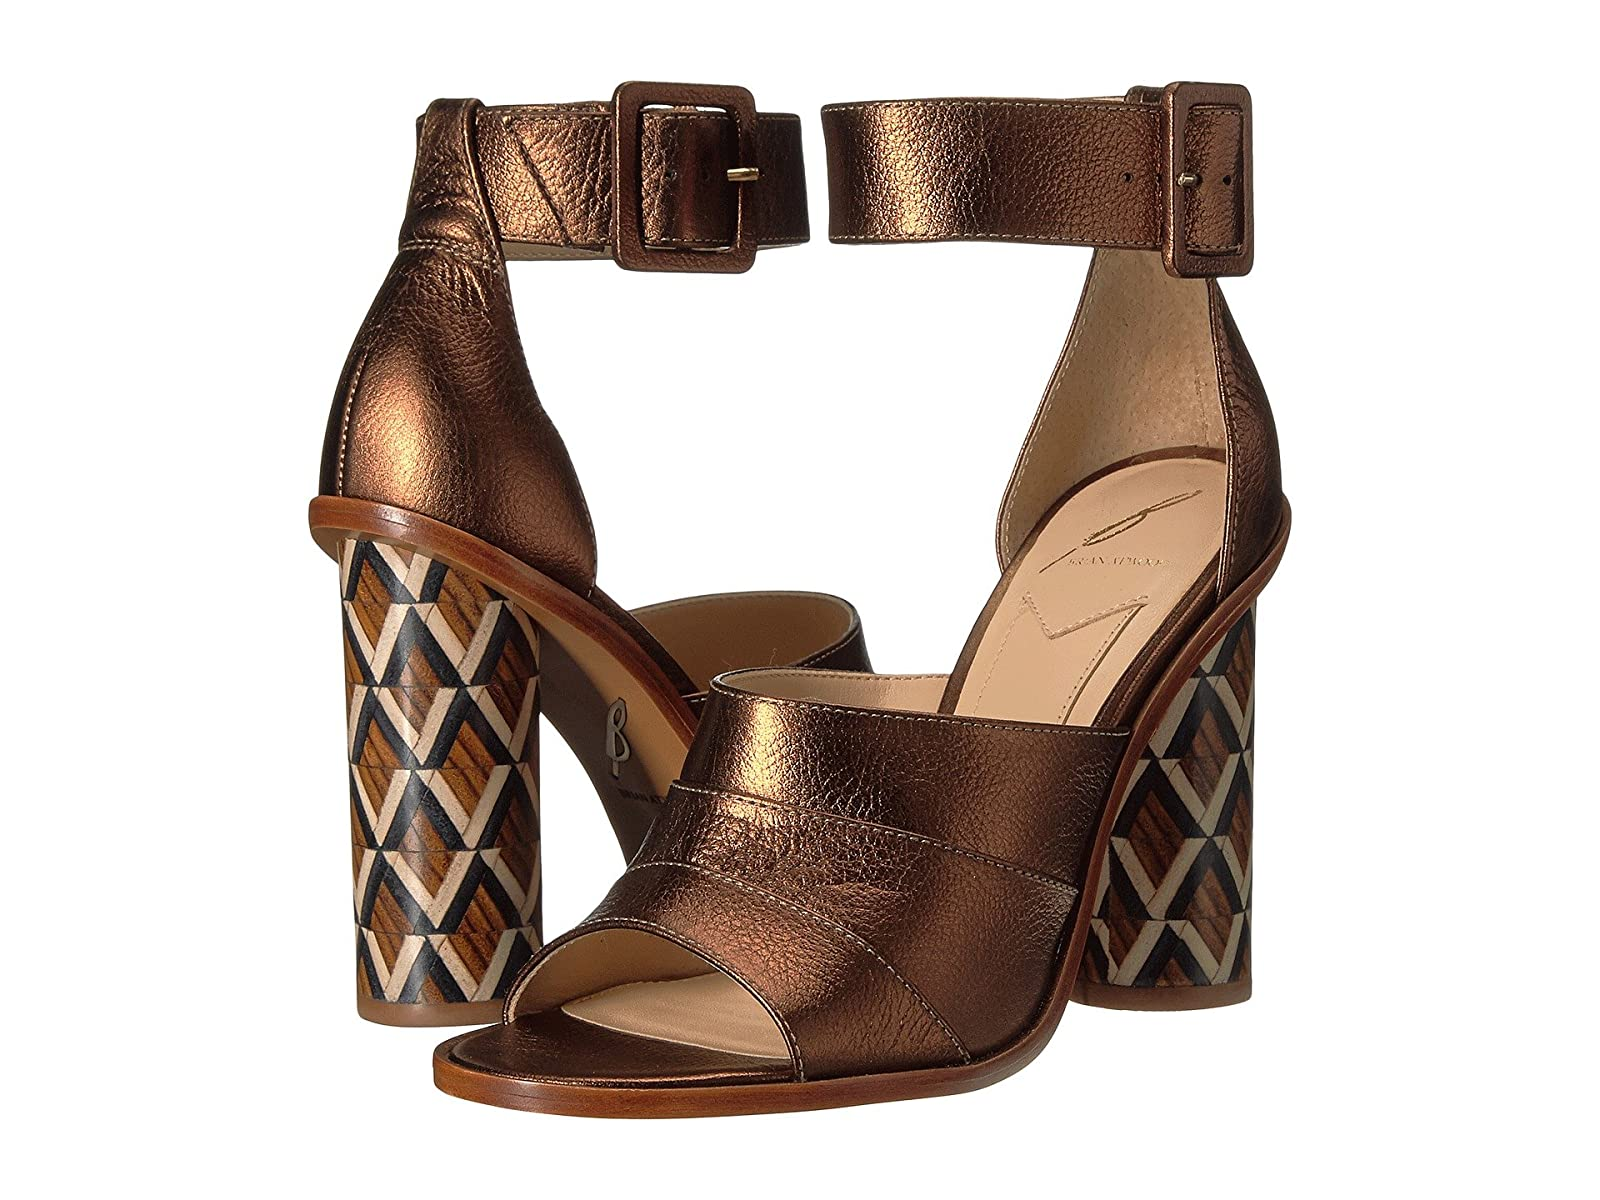 B Highlighted Brian Atwood Brady - Highlighted B style -Man/Woman 665382